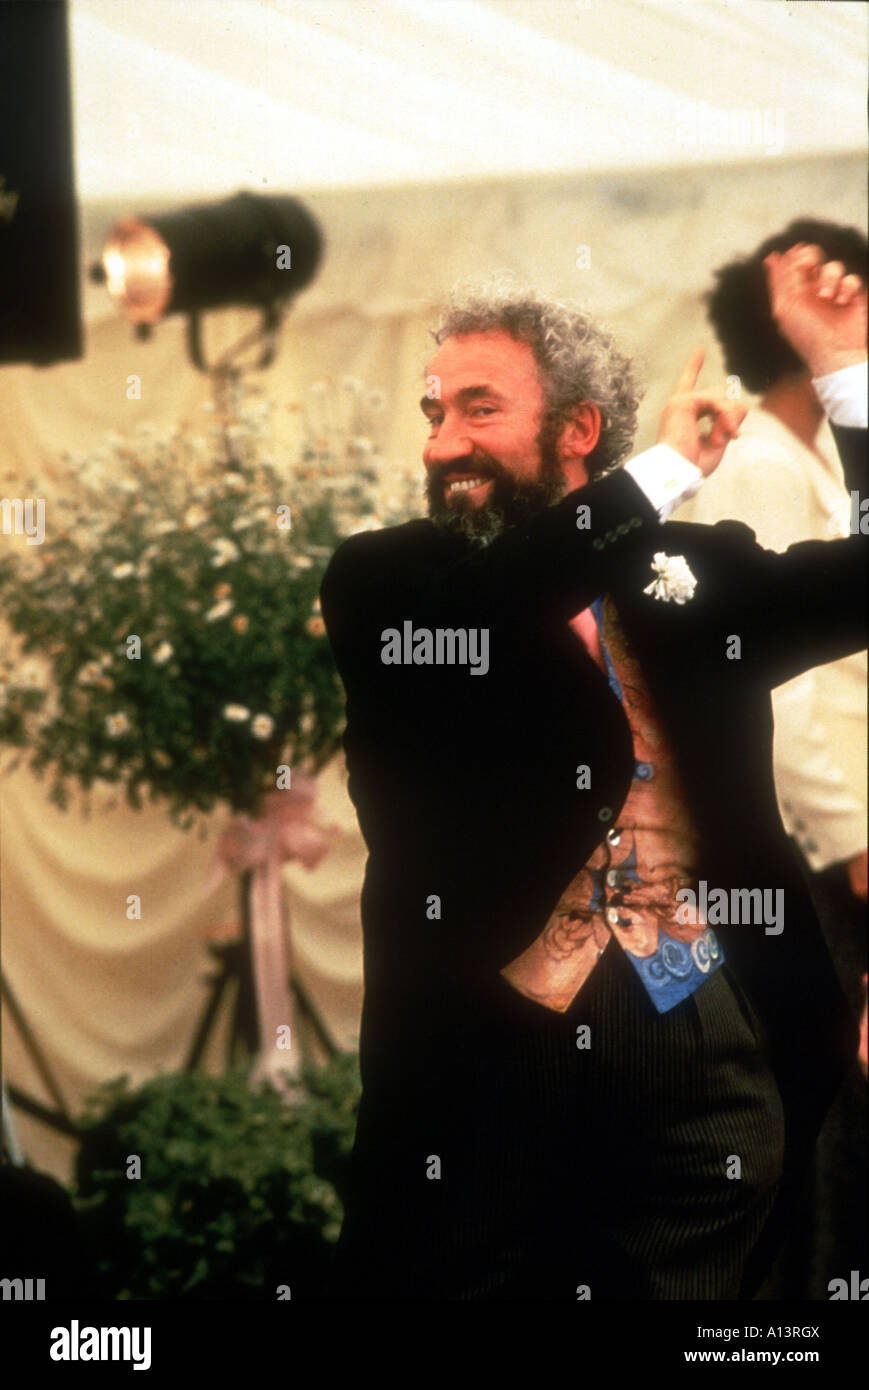 Four Weddings And A Funeral Year 1994 Director Mike Newell Simon